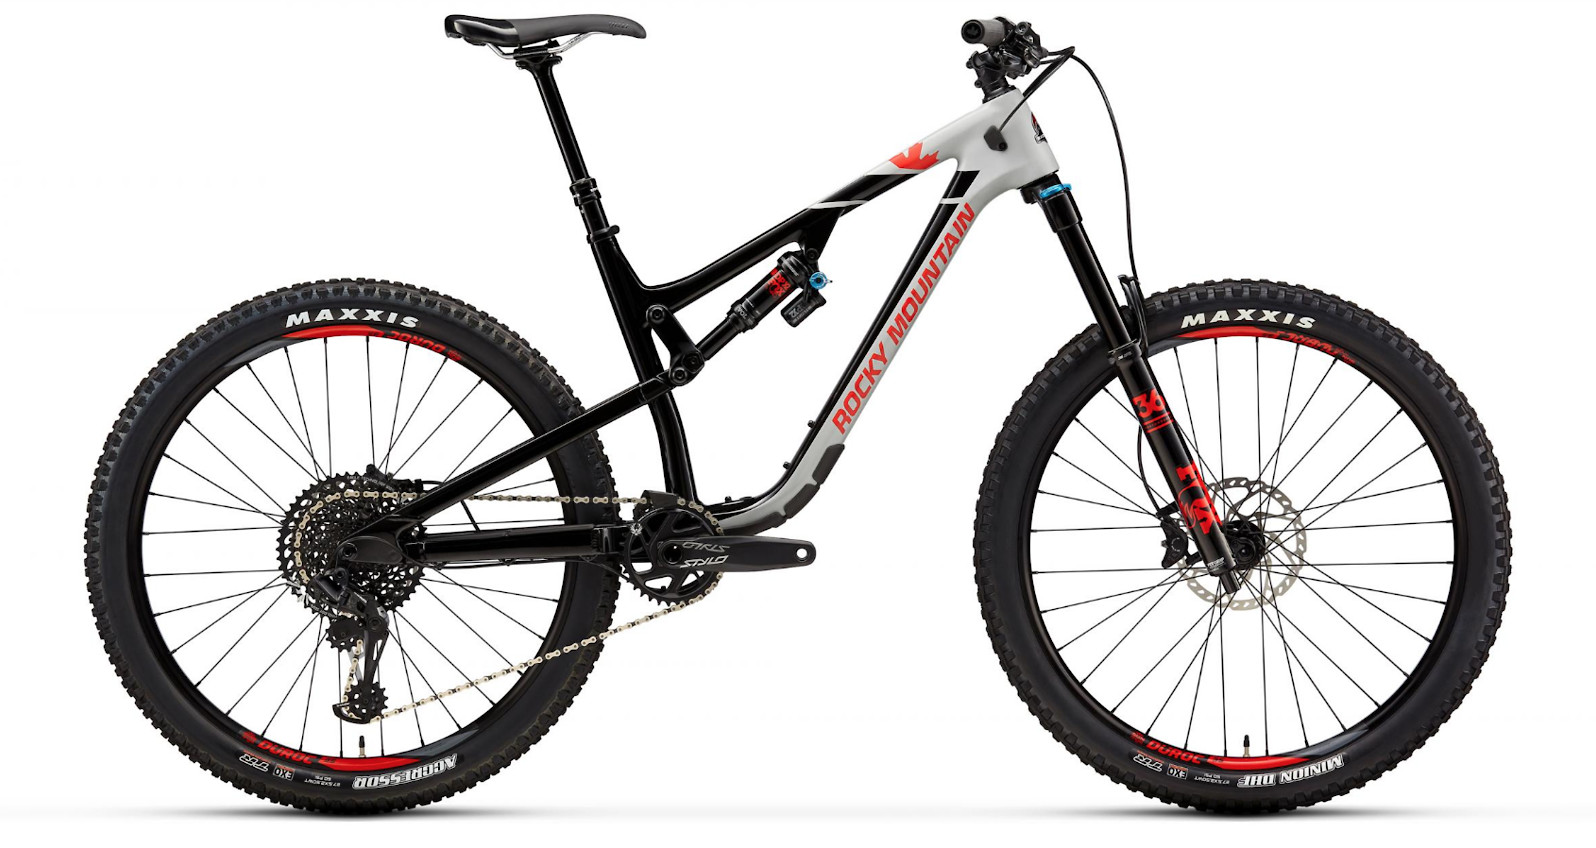 2019 Rocky Mountain Altitude Carbon 50 - Gray, black, and red